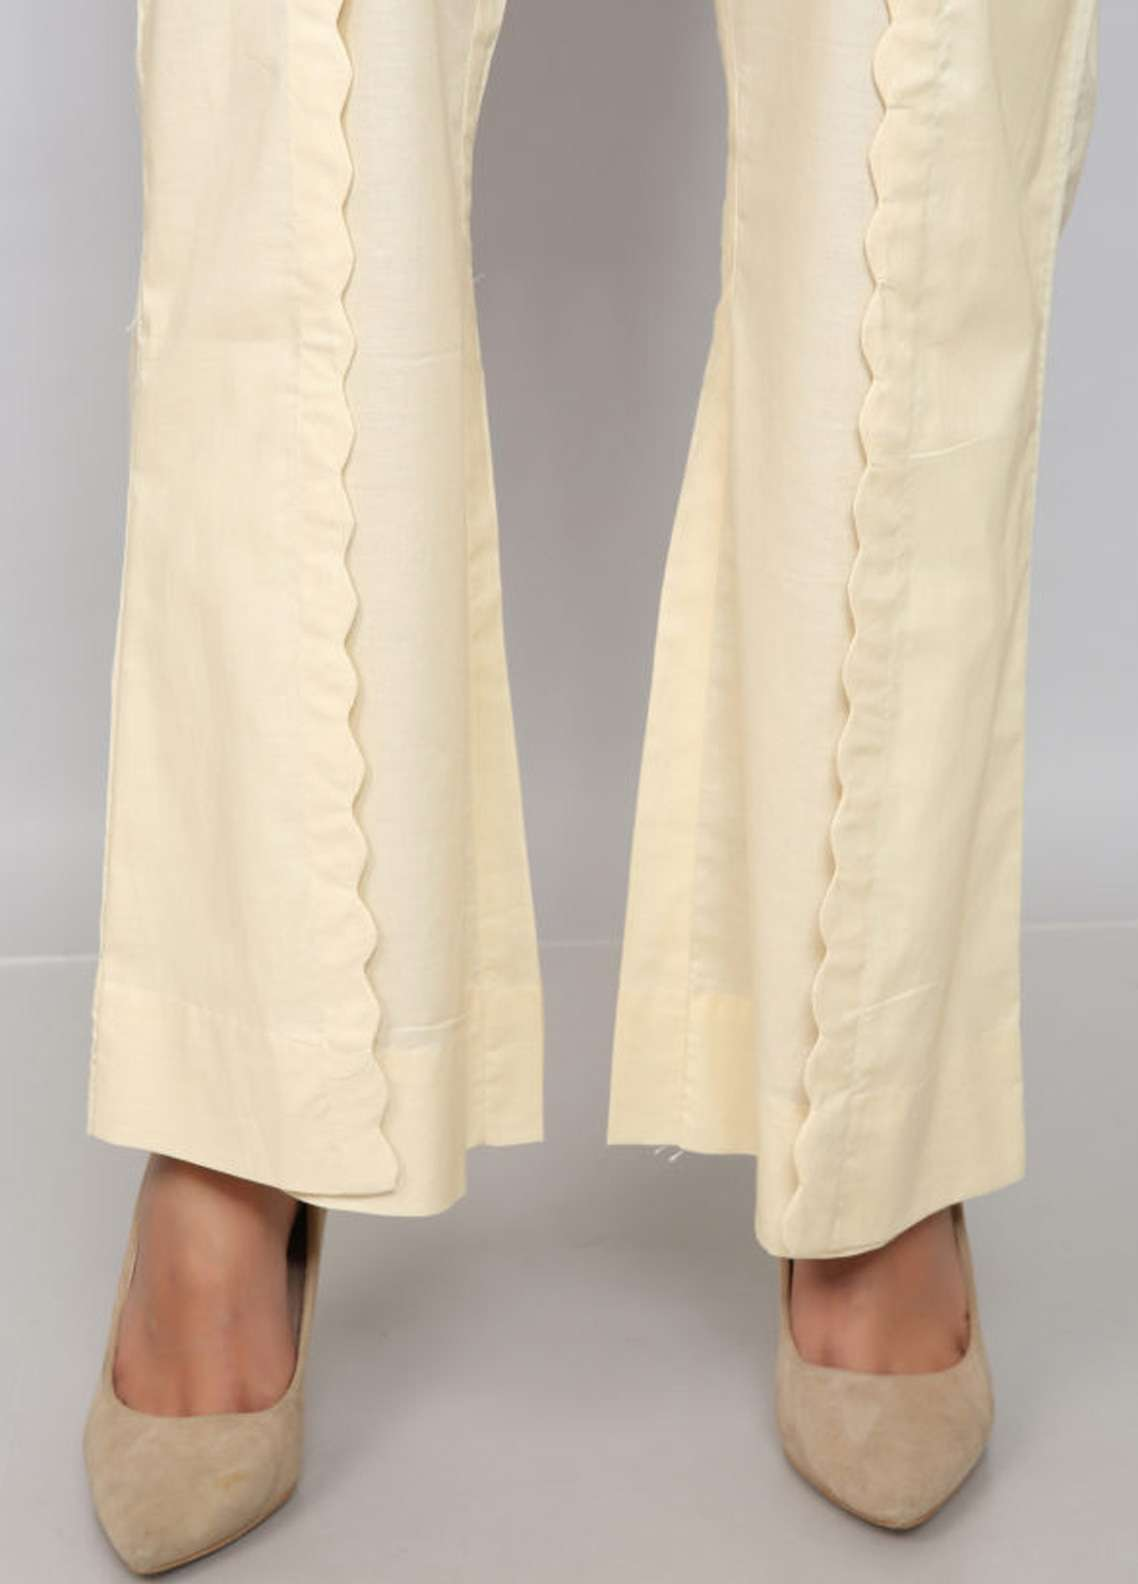 Kross Kulture Textured Jacquard Stitched Trousers PTR-198004 B Off-White